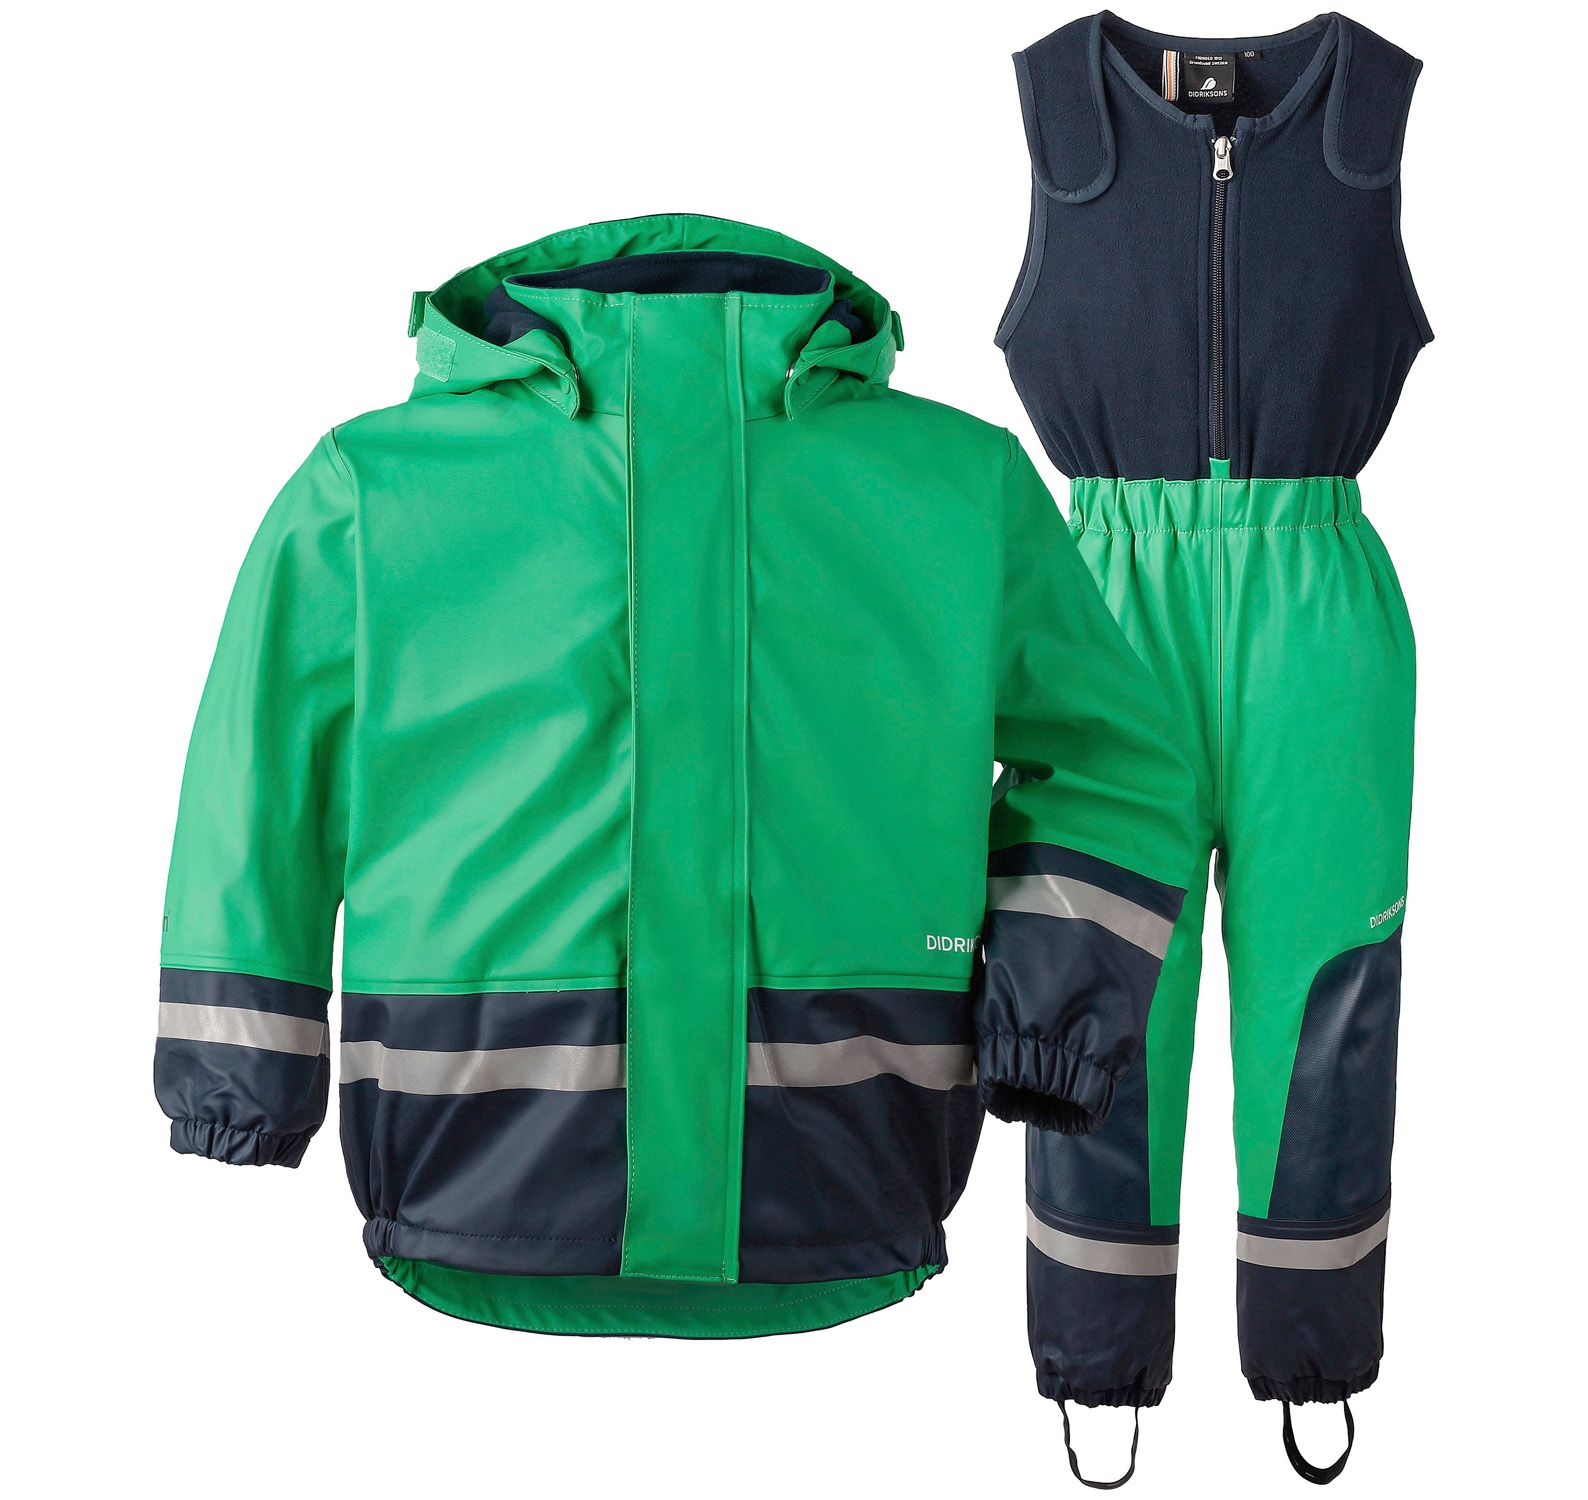 boardman kid's set, bright green, 100, didriksons regnkläder